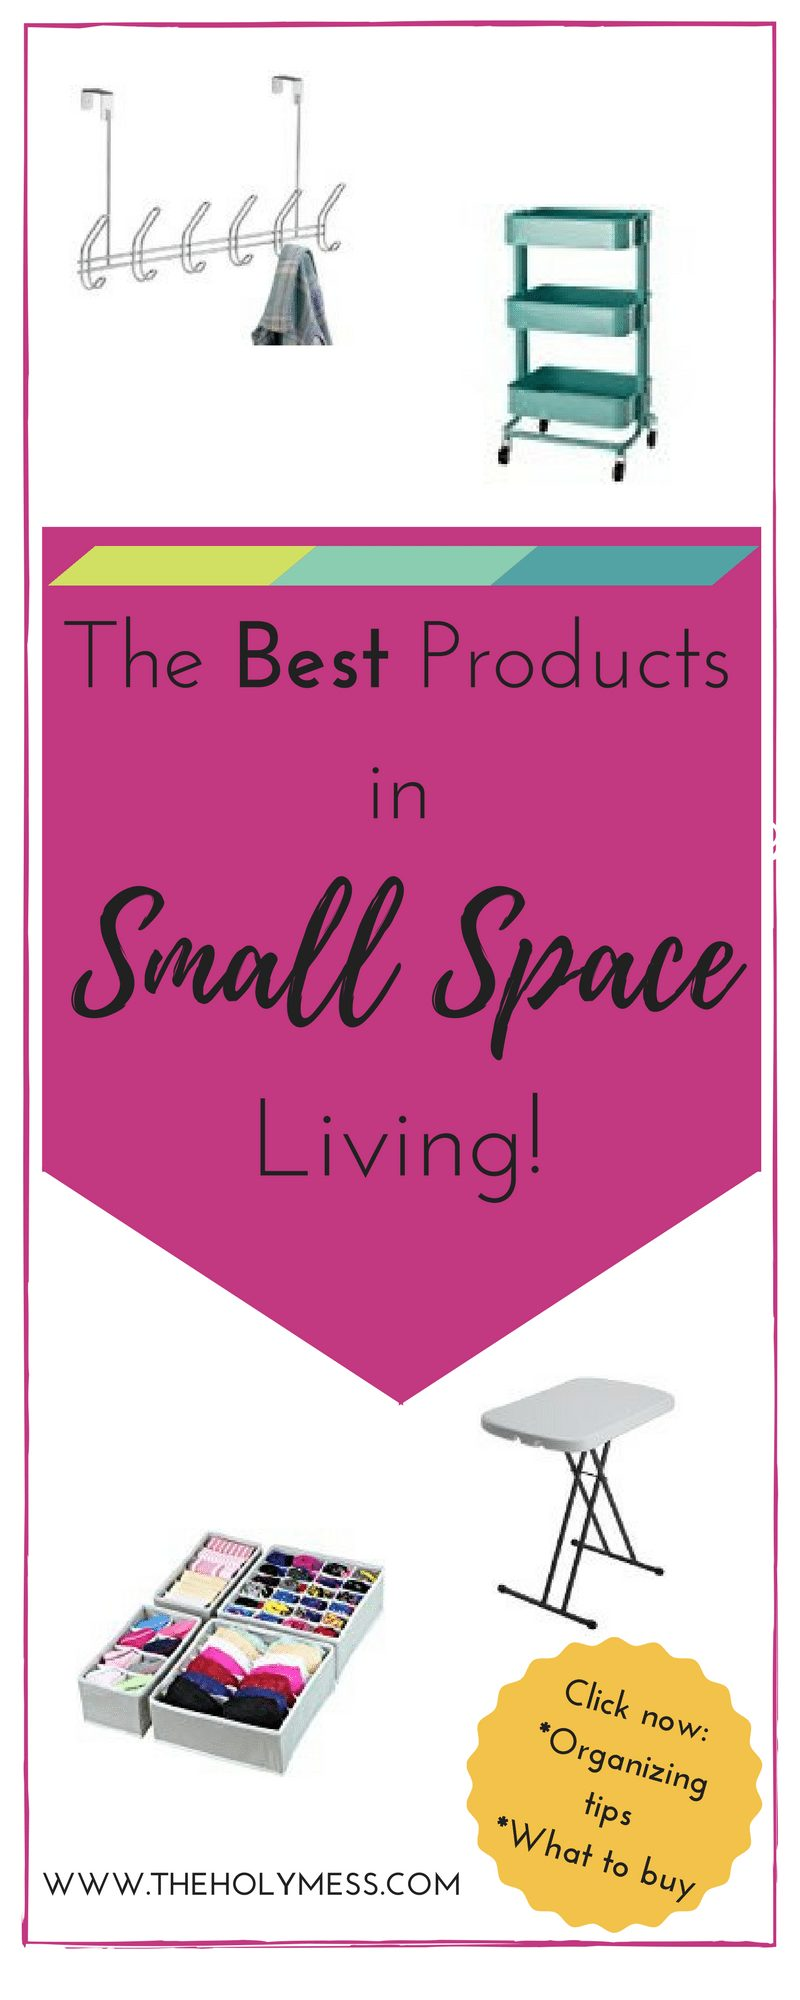 The Best Products for Small Space Living|The Holy Mess